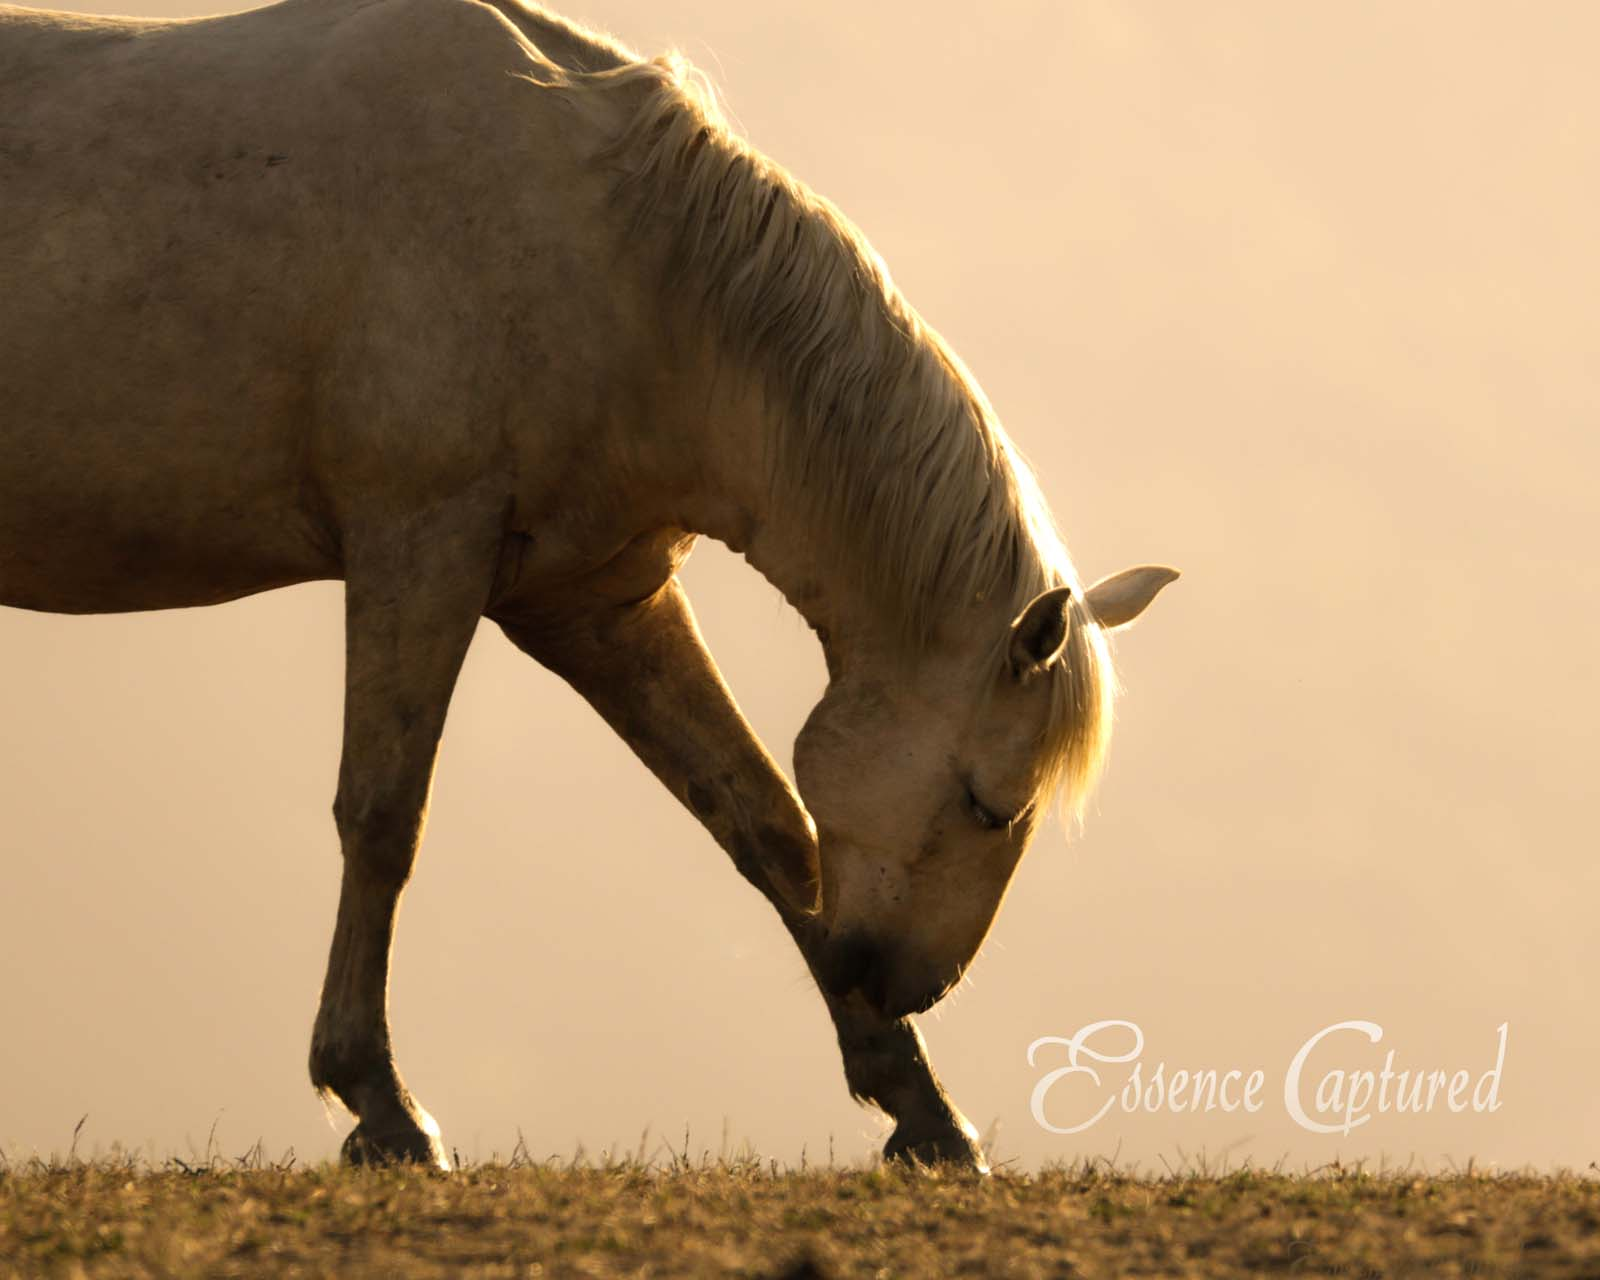 white horse silhouetted at sunset bending down to scratch leg with nose